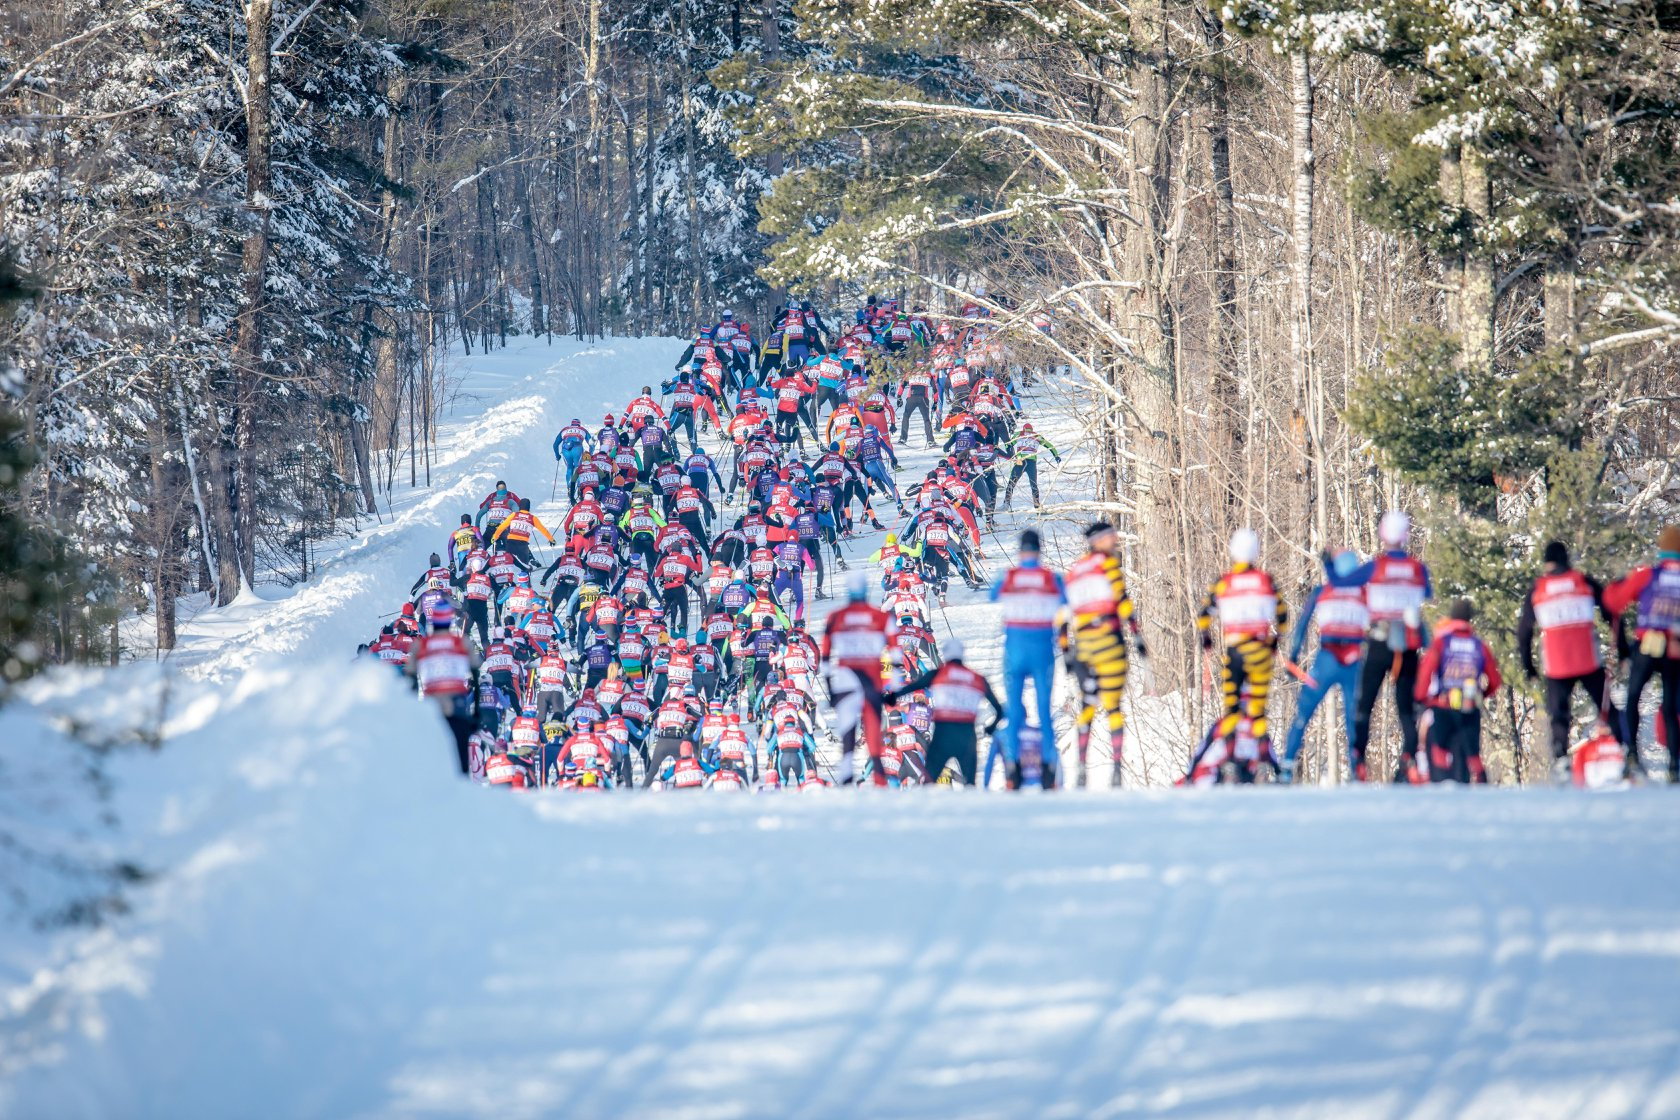 https://fasterskier.com/wp-content/blogs.dir/1/files/2018/03/Birke-Wave-2-American-Birkebeiner-Ski-Foundation-photo.jpg